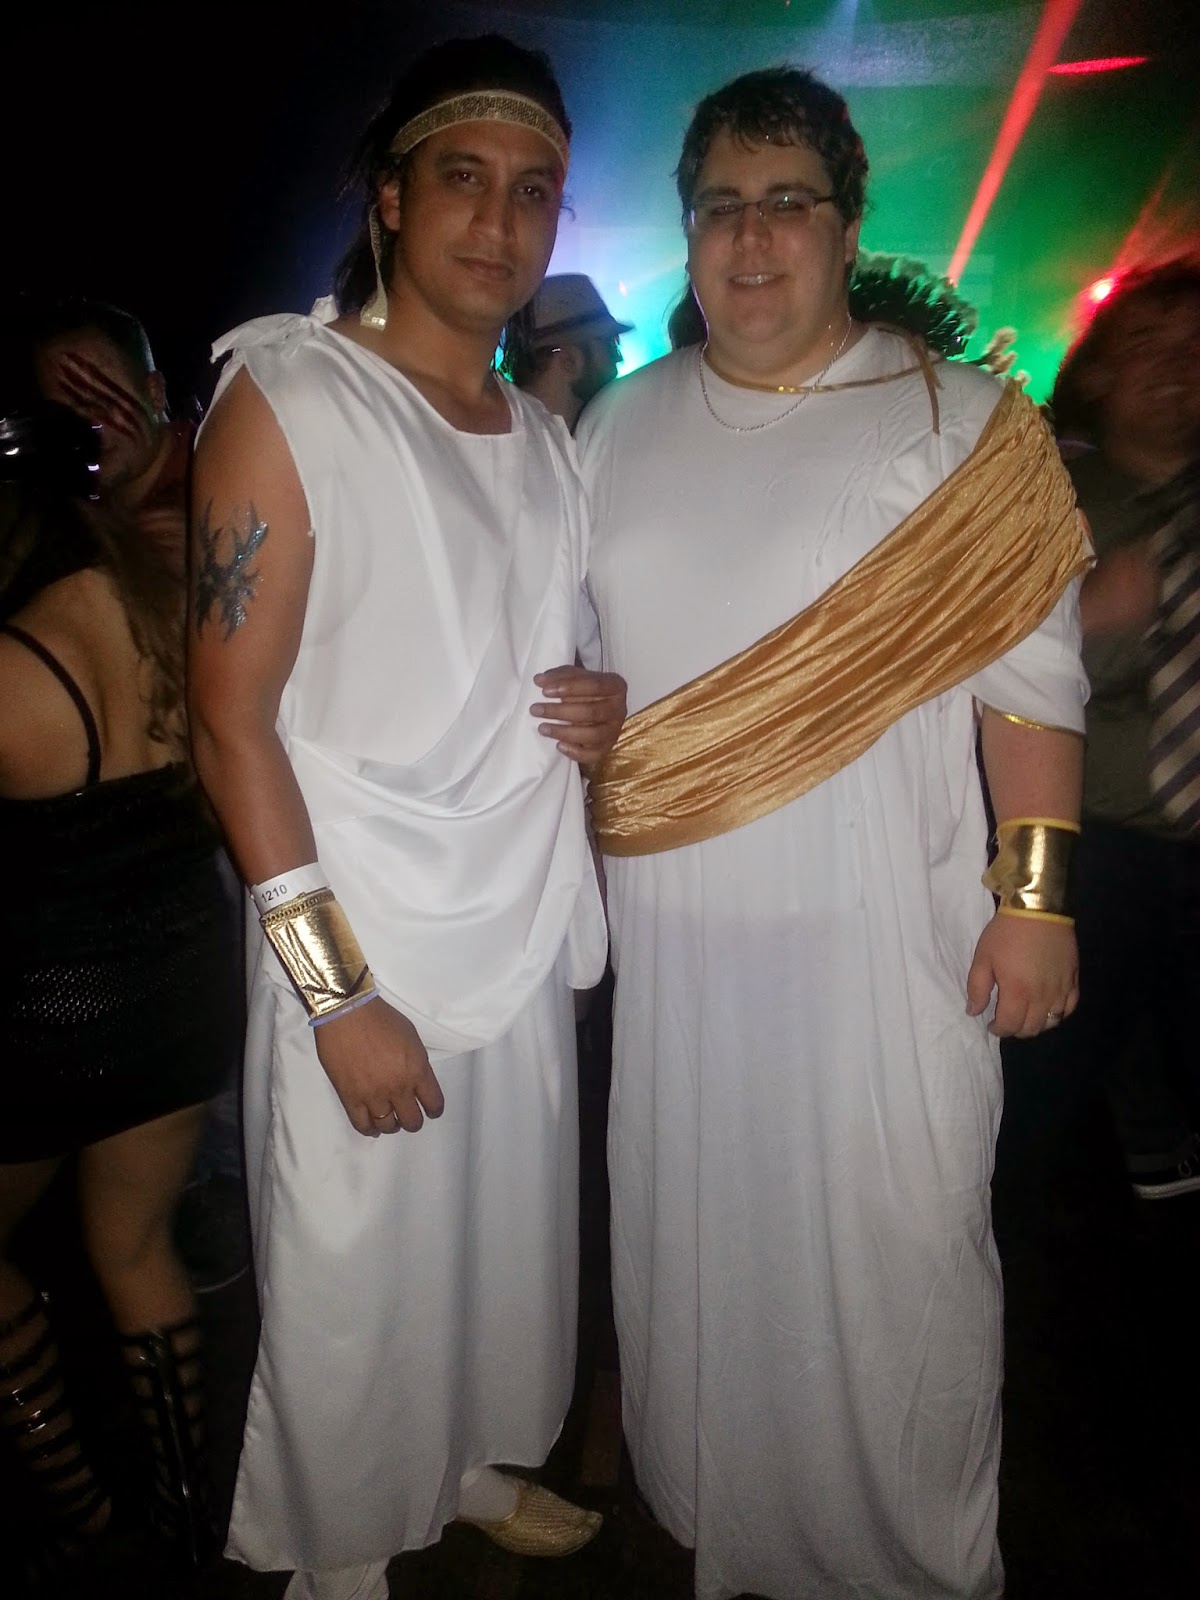 Greek God costumes, Decent Halloween costumes, Indian couple in Halloween costumes, Unique ideas for halloween